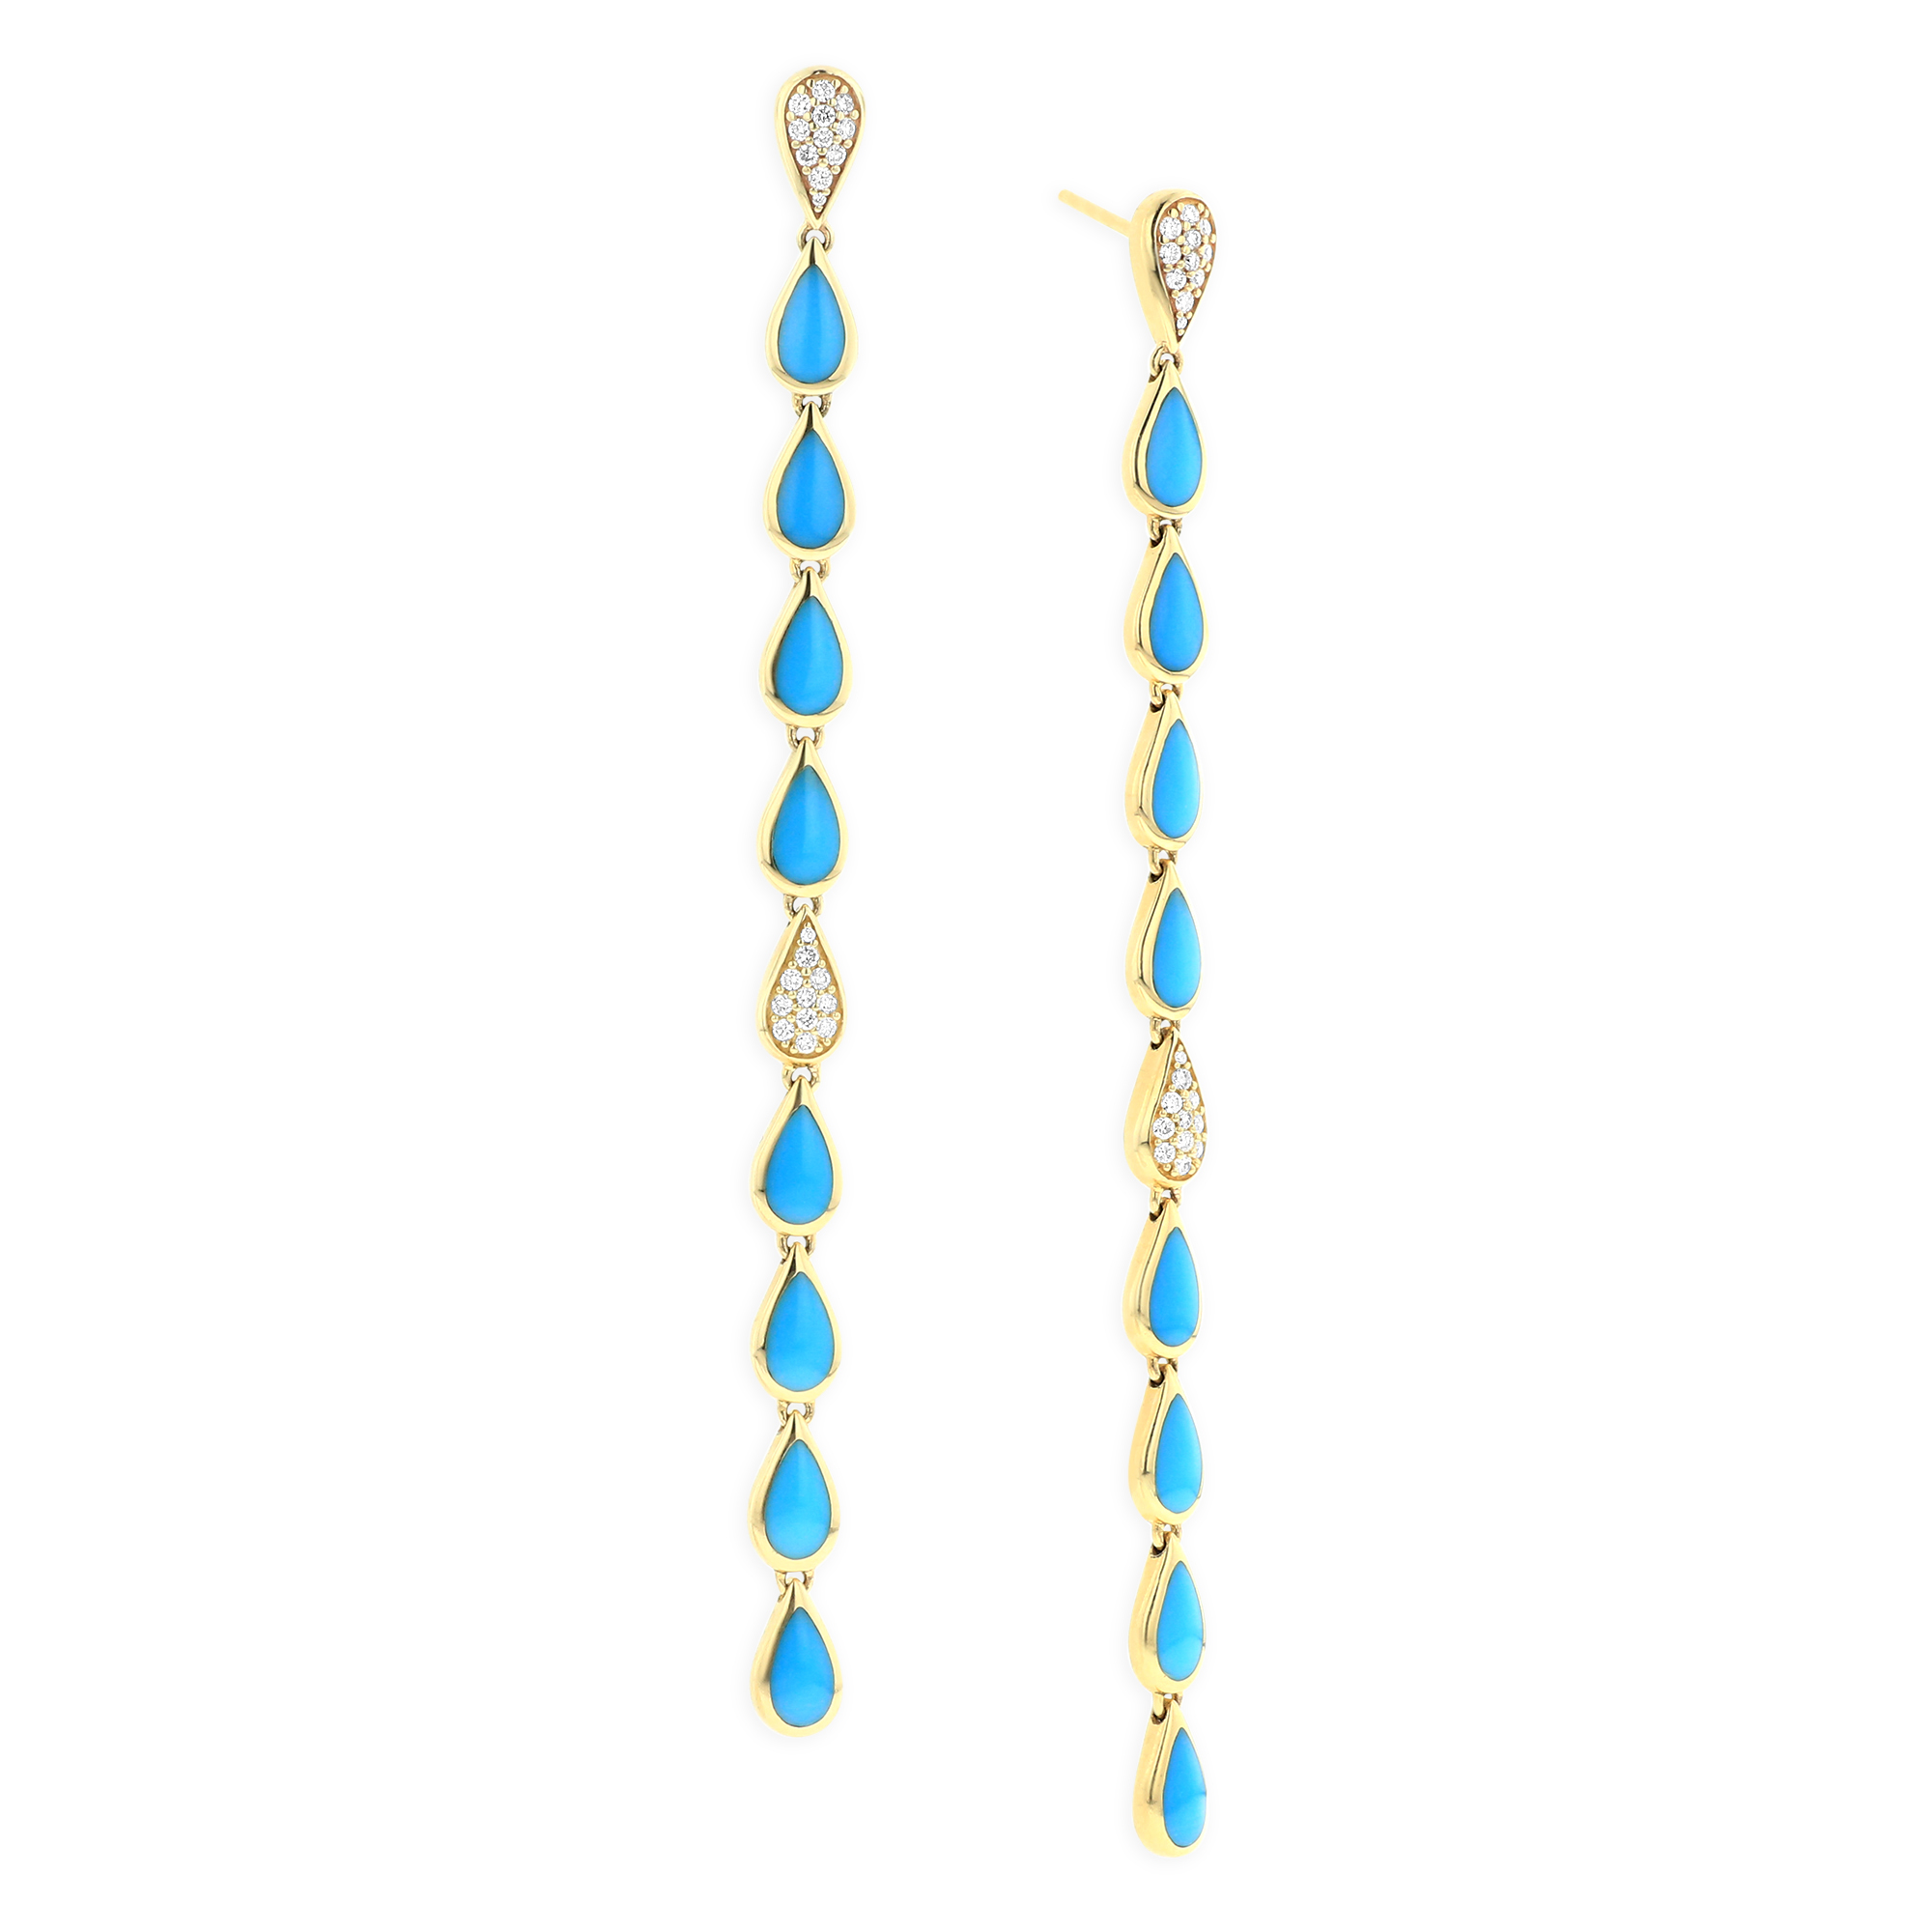 Kabana Sleeping Beauty turquoise drop earrings | JCK On Your Market